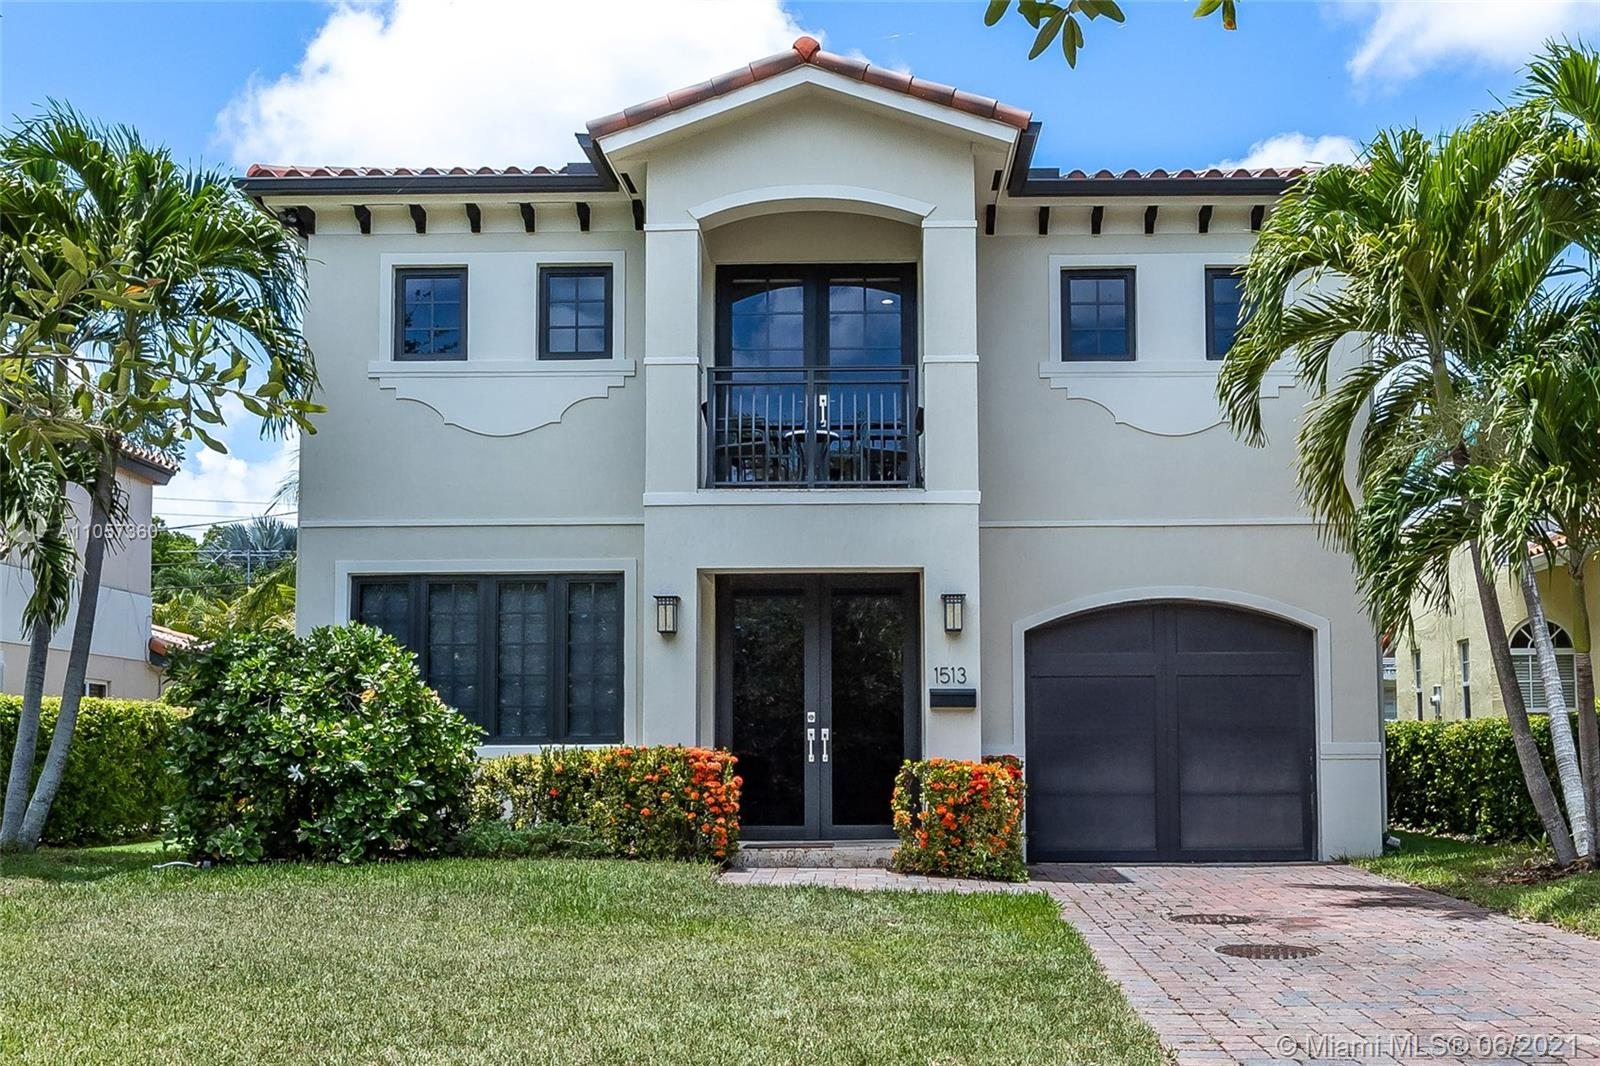 Incredible Residence in Coral Gables! Like Brand New Construction, Great Location access to major roads & Highways, Exclusive shopping Dinning & entertainment spots. Home has Lots of Natural Light it features 4/3 ,1 Car Garage, which is currently uses as an in-law quarters, it is professionally tiled & has its own AC system (it may very easily be converted back to full garage). Formal Living & Dining,  Quartz Kitchen counter, Family Room, Laundry Room, 1/1 Downstairs with adjacent full bathroom, Custom Stairs with Modern Railings, Gorgeous Bathrooms, Large Master Suite with Spacious Walk in Closets, High Ceilings 12 Ft, High Solid Wood Doors, Impact Windows & Doors, Covered Patio, Large Driveway with Pavers & much more! Call Listing Agent: Johan Rodriguez for a private showing,.